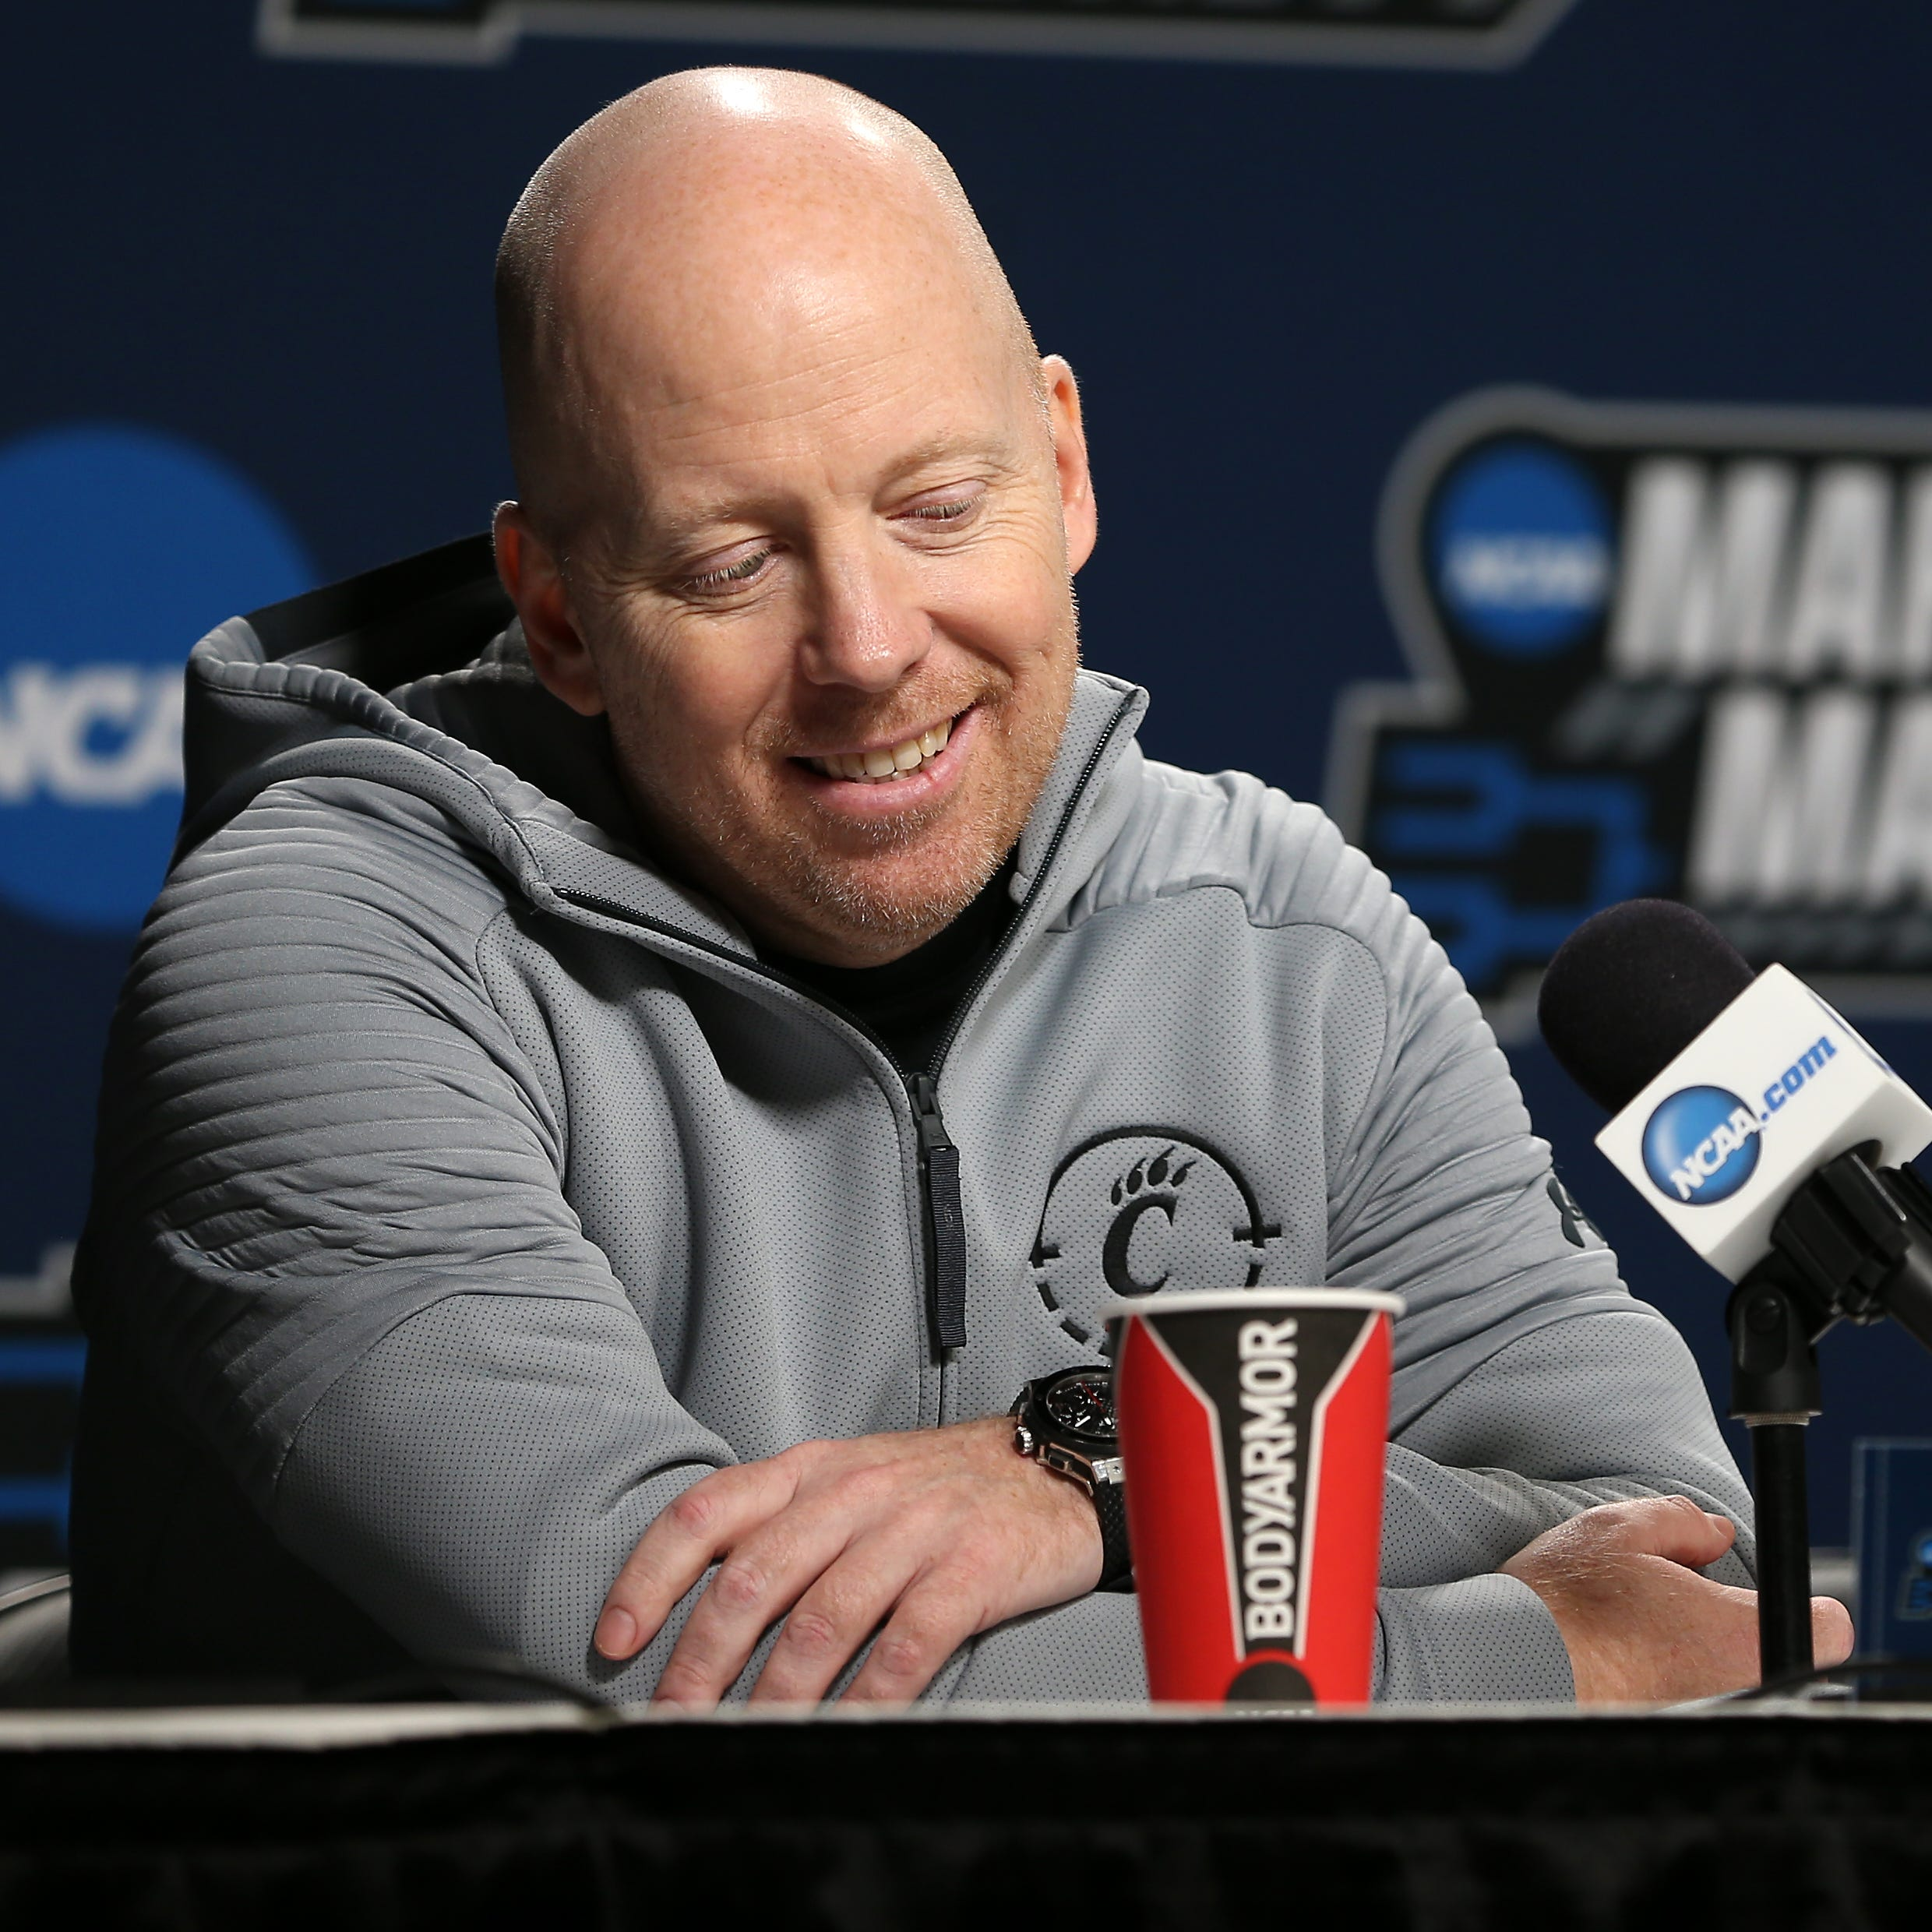 Report: UC coach Mick Cronin offered new contract that 'functionally called for a pay cut'